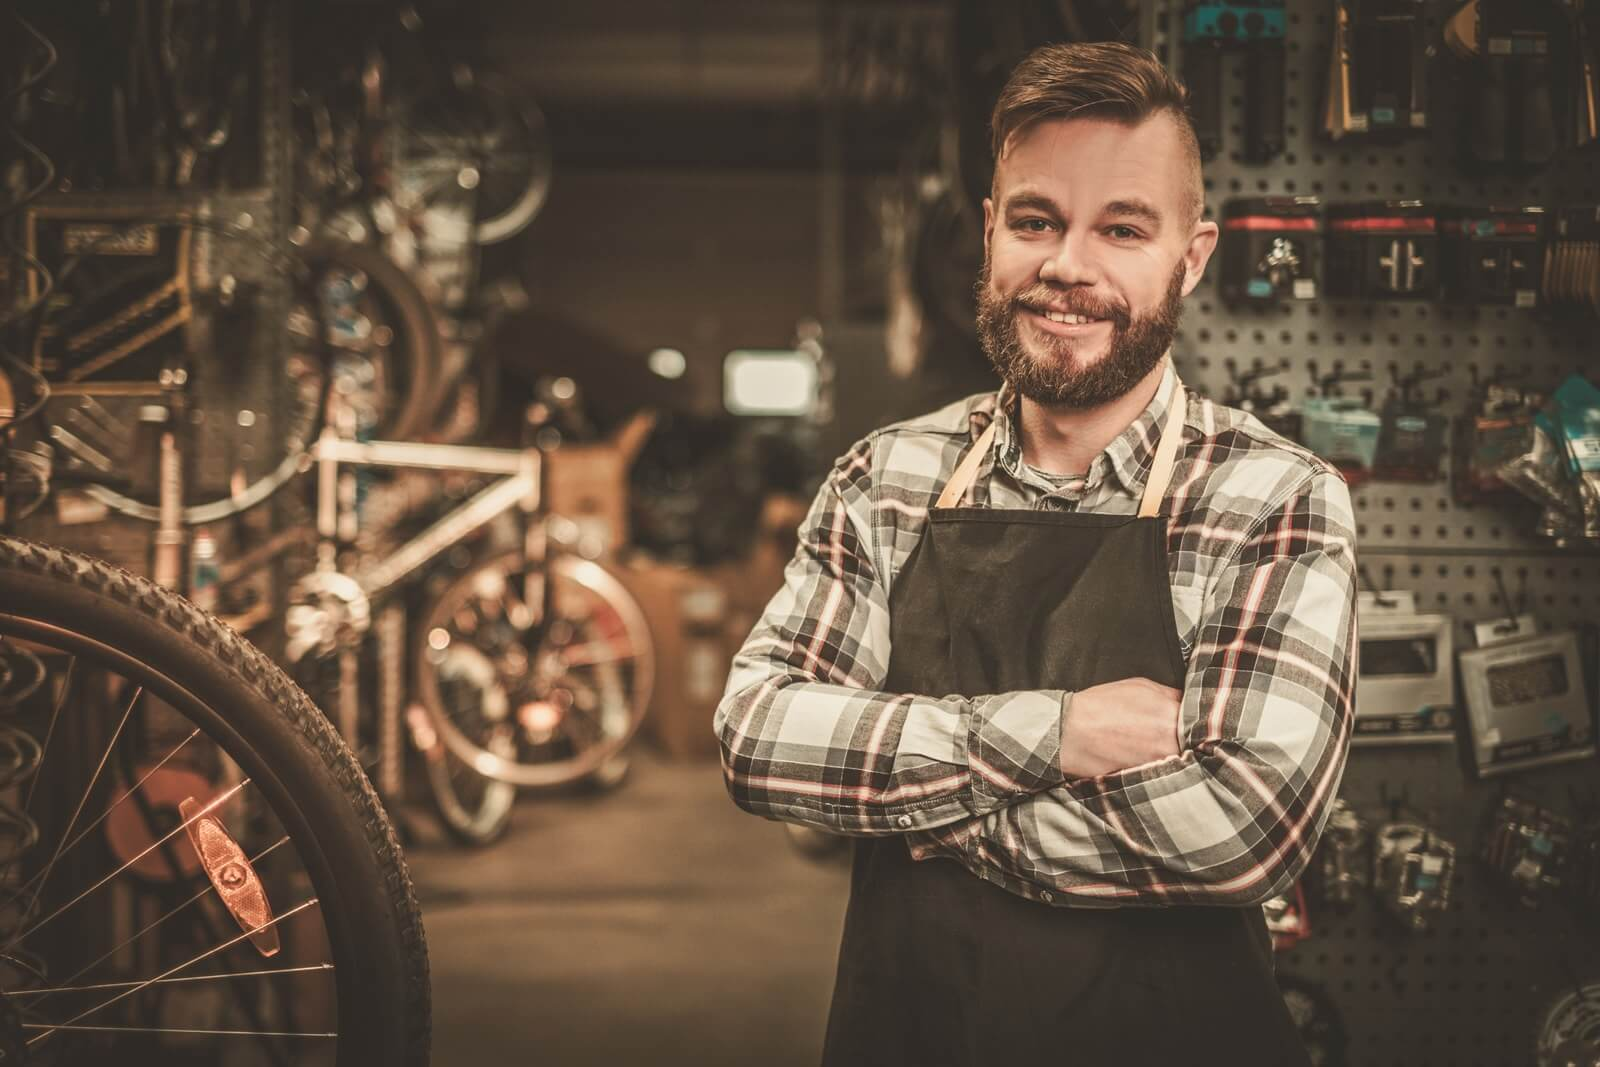 man wearing a plaid shirt and apron standing in a bike shop